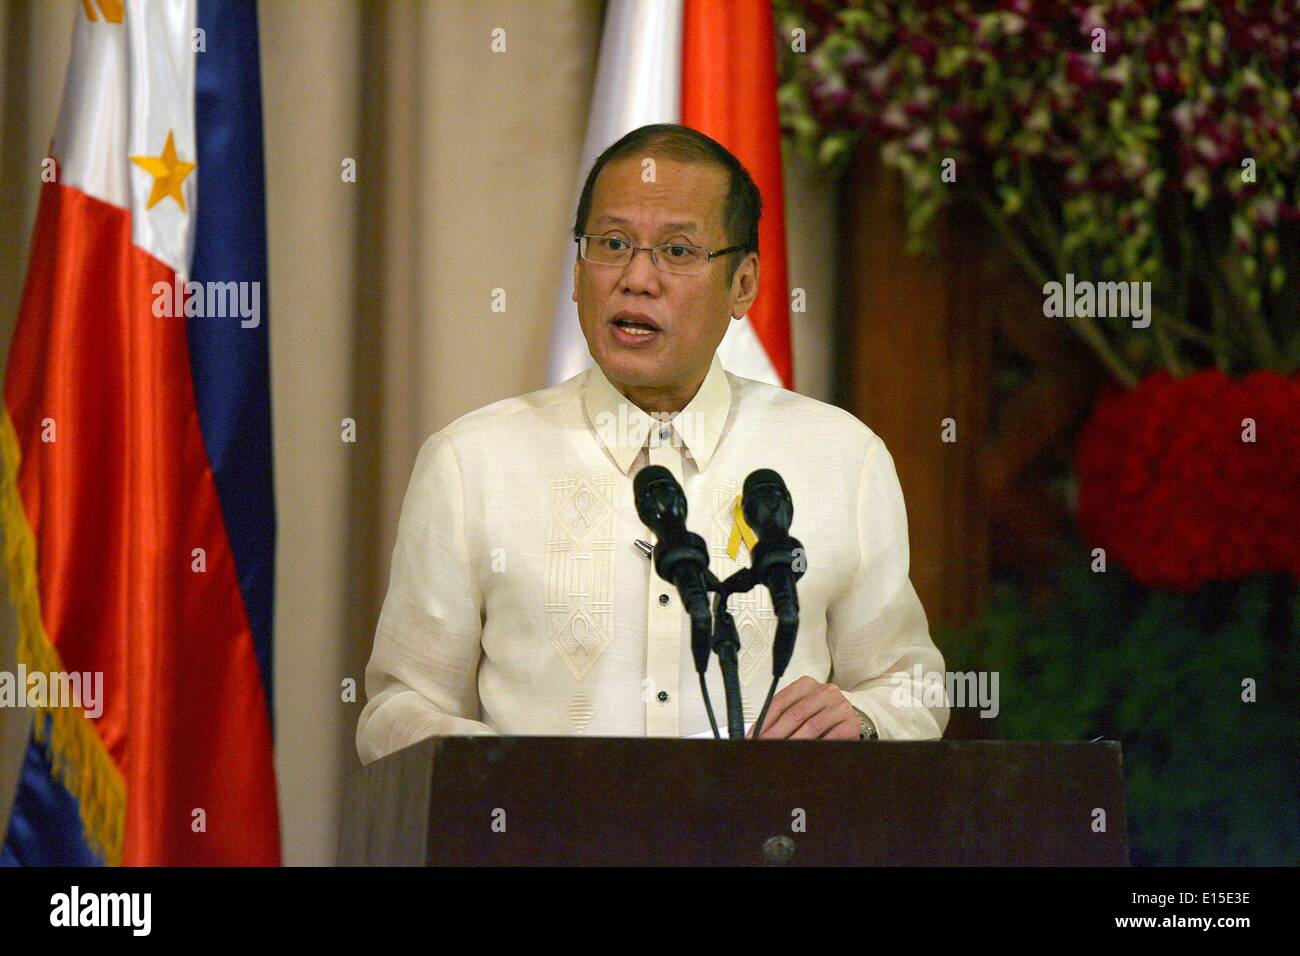 Manila, Philippines. 23rd May, 2014. Philippine President Benigno Aquino III attends the joint press conference at the presidential palace in Manila, the Philippines, May 23, 2014. The Philippines and Indonesia signed on Friday an agreement on the delimitation of their overlapping exclusive economic zones (EEZ) in the Mindanao Sea and Celebes Sea. © Rouelle Umali/Xinhua/Alamy Live News - Stock Image